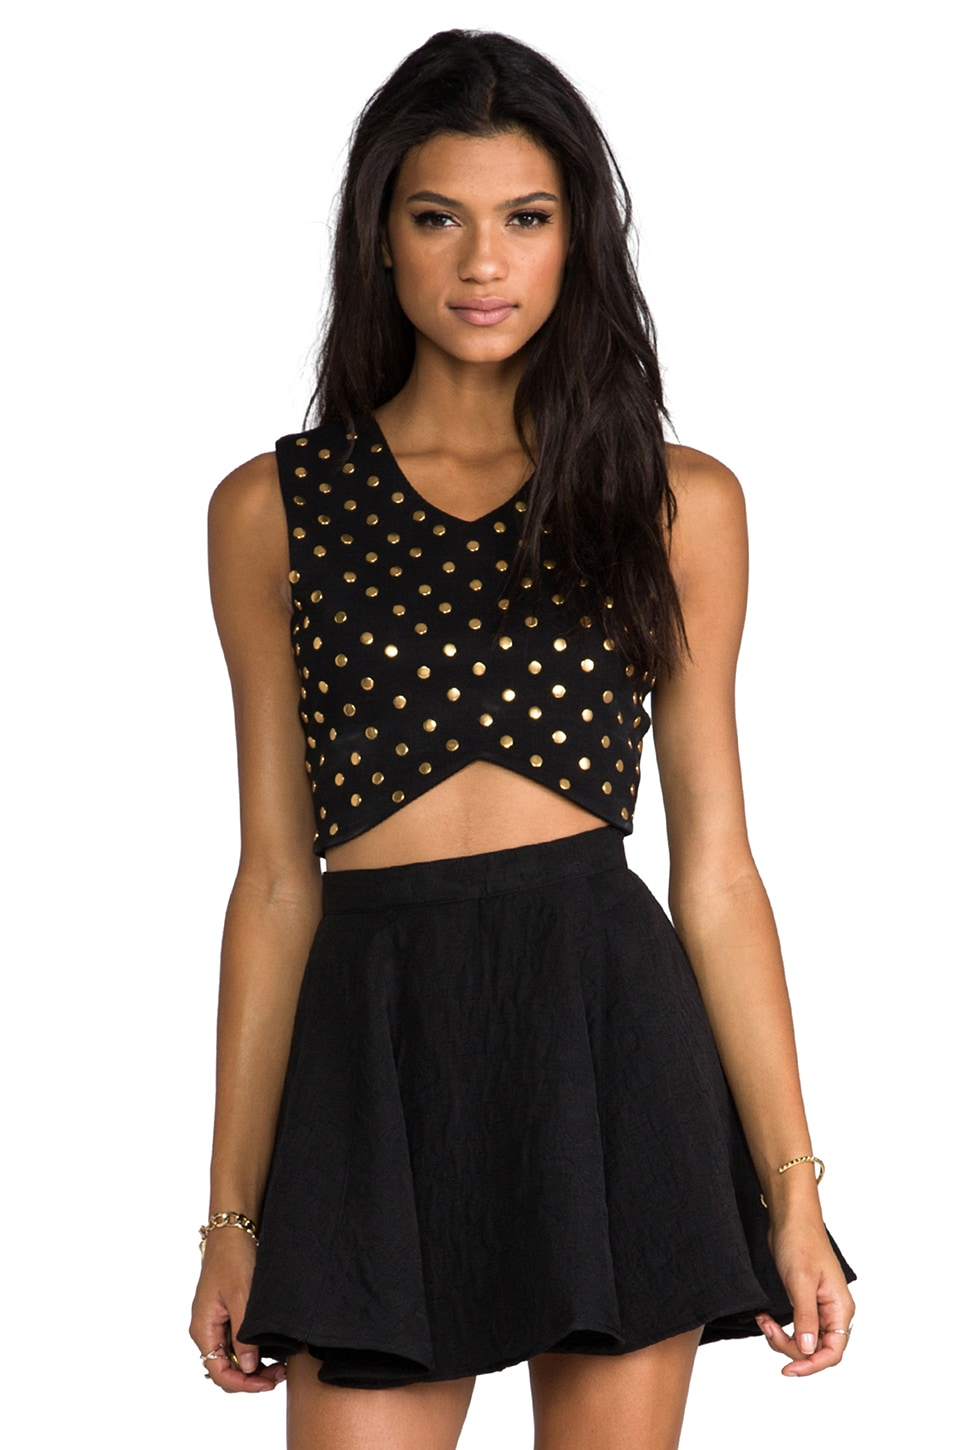 Lovers + Friends REVOLVE Exclusive Blaine Studded Crop Top en Noir